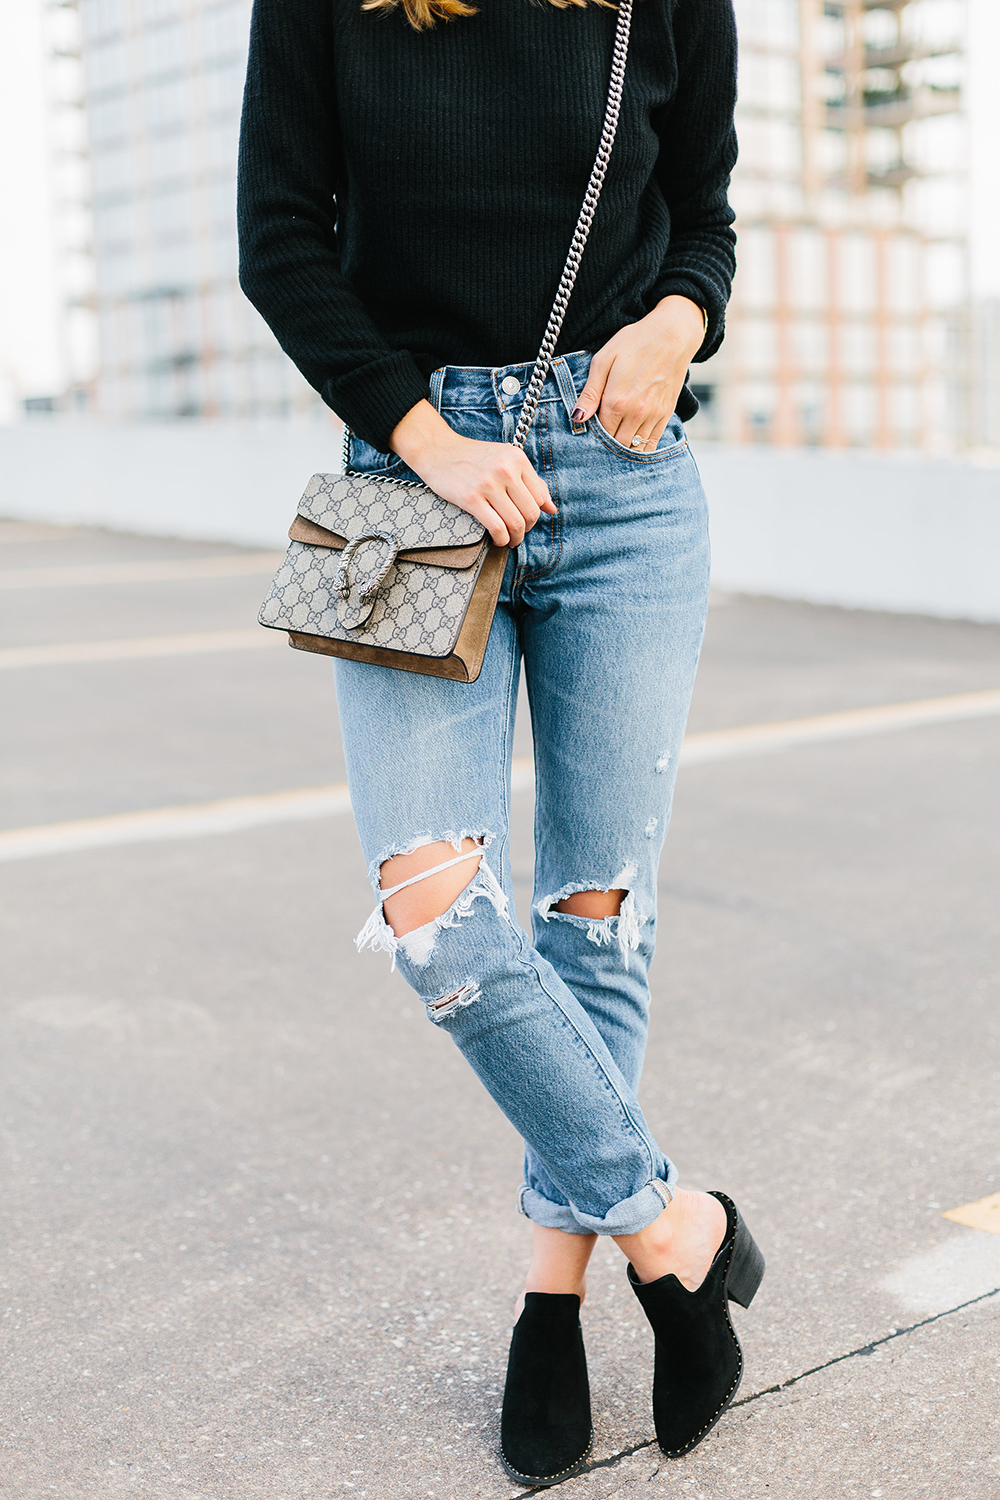 livvyland-blog-olivia-watson-topshop-black-knit-sweater-cozy-slip-on-black-boho-mules-levis-501-2